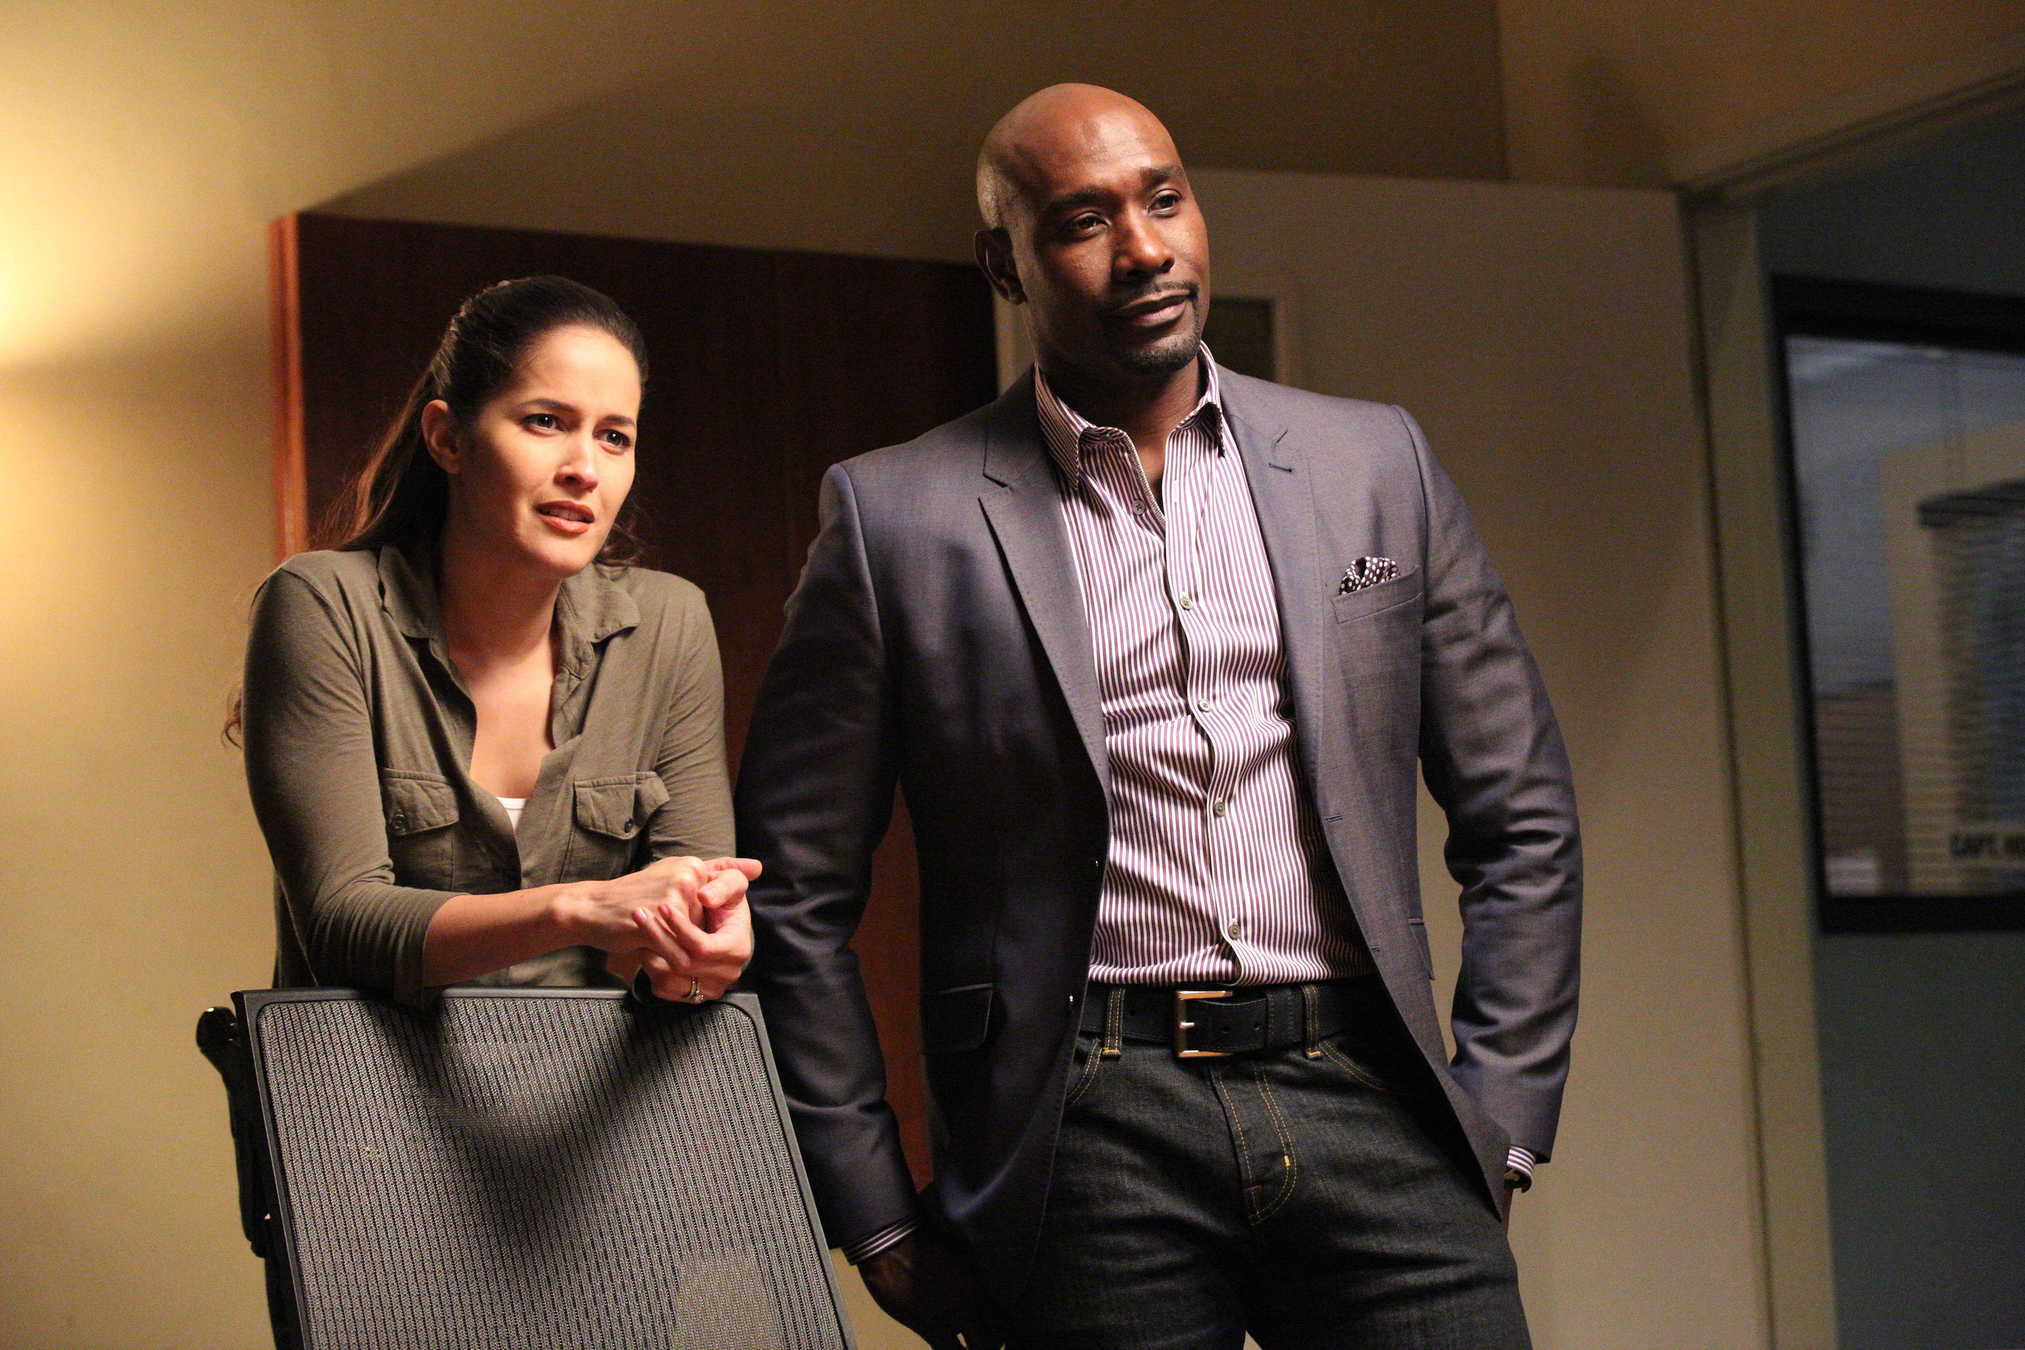 Rosewood Tv Show ~ Rosewood tv show on fox cancel or keep